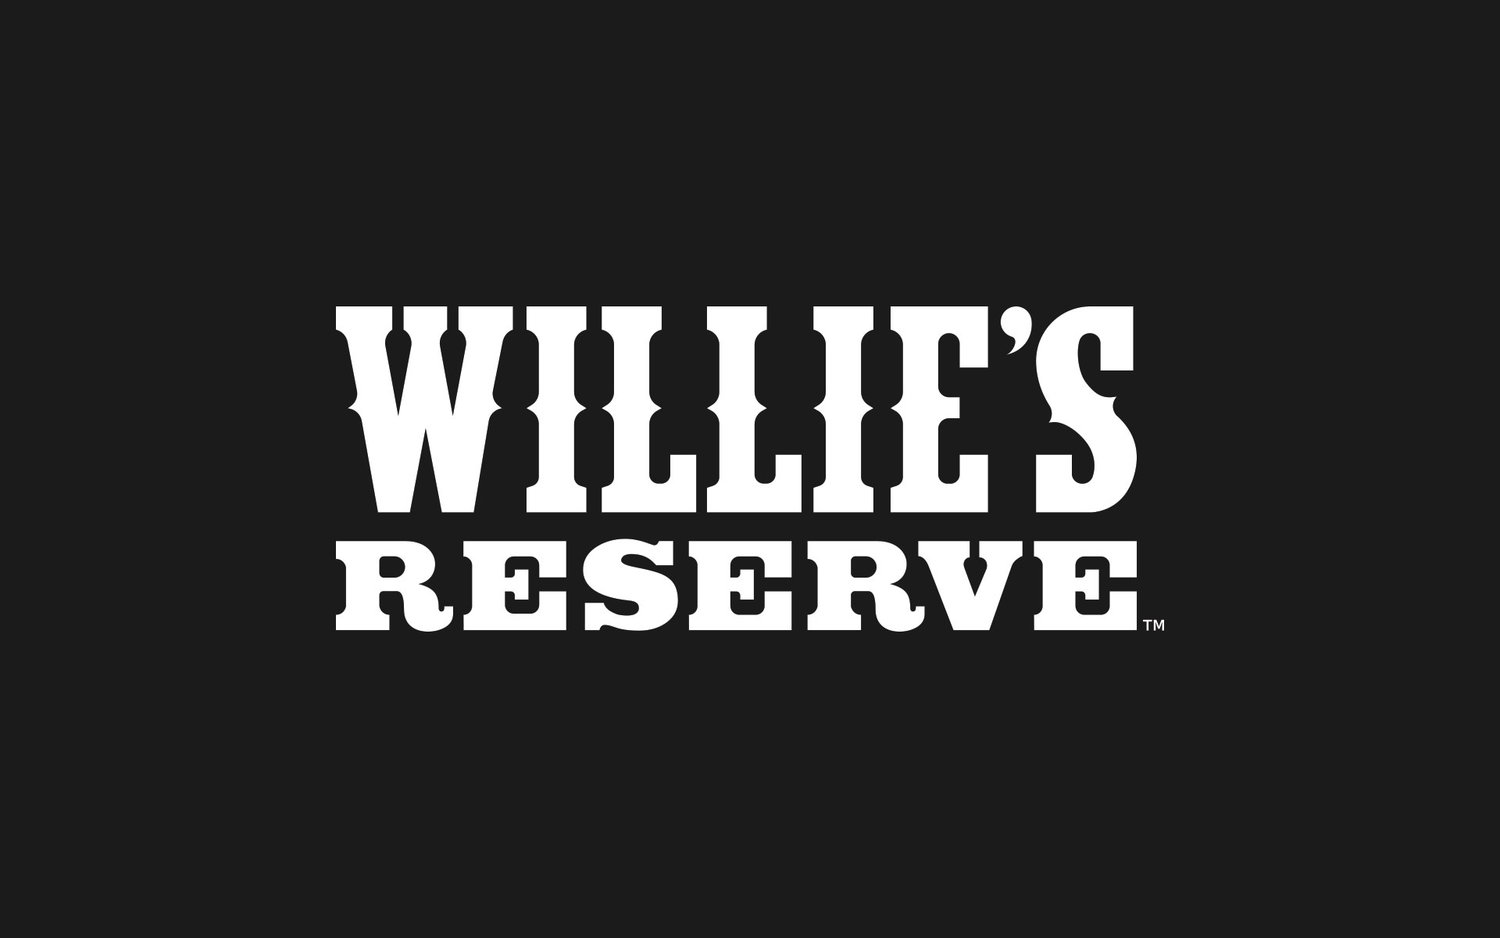 Retailers — Willie's Reserve